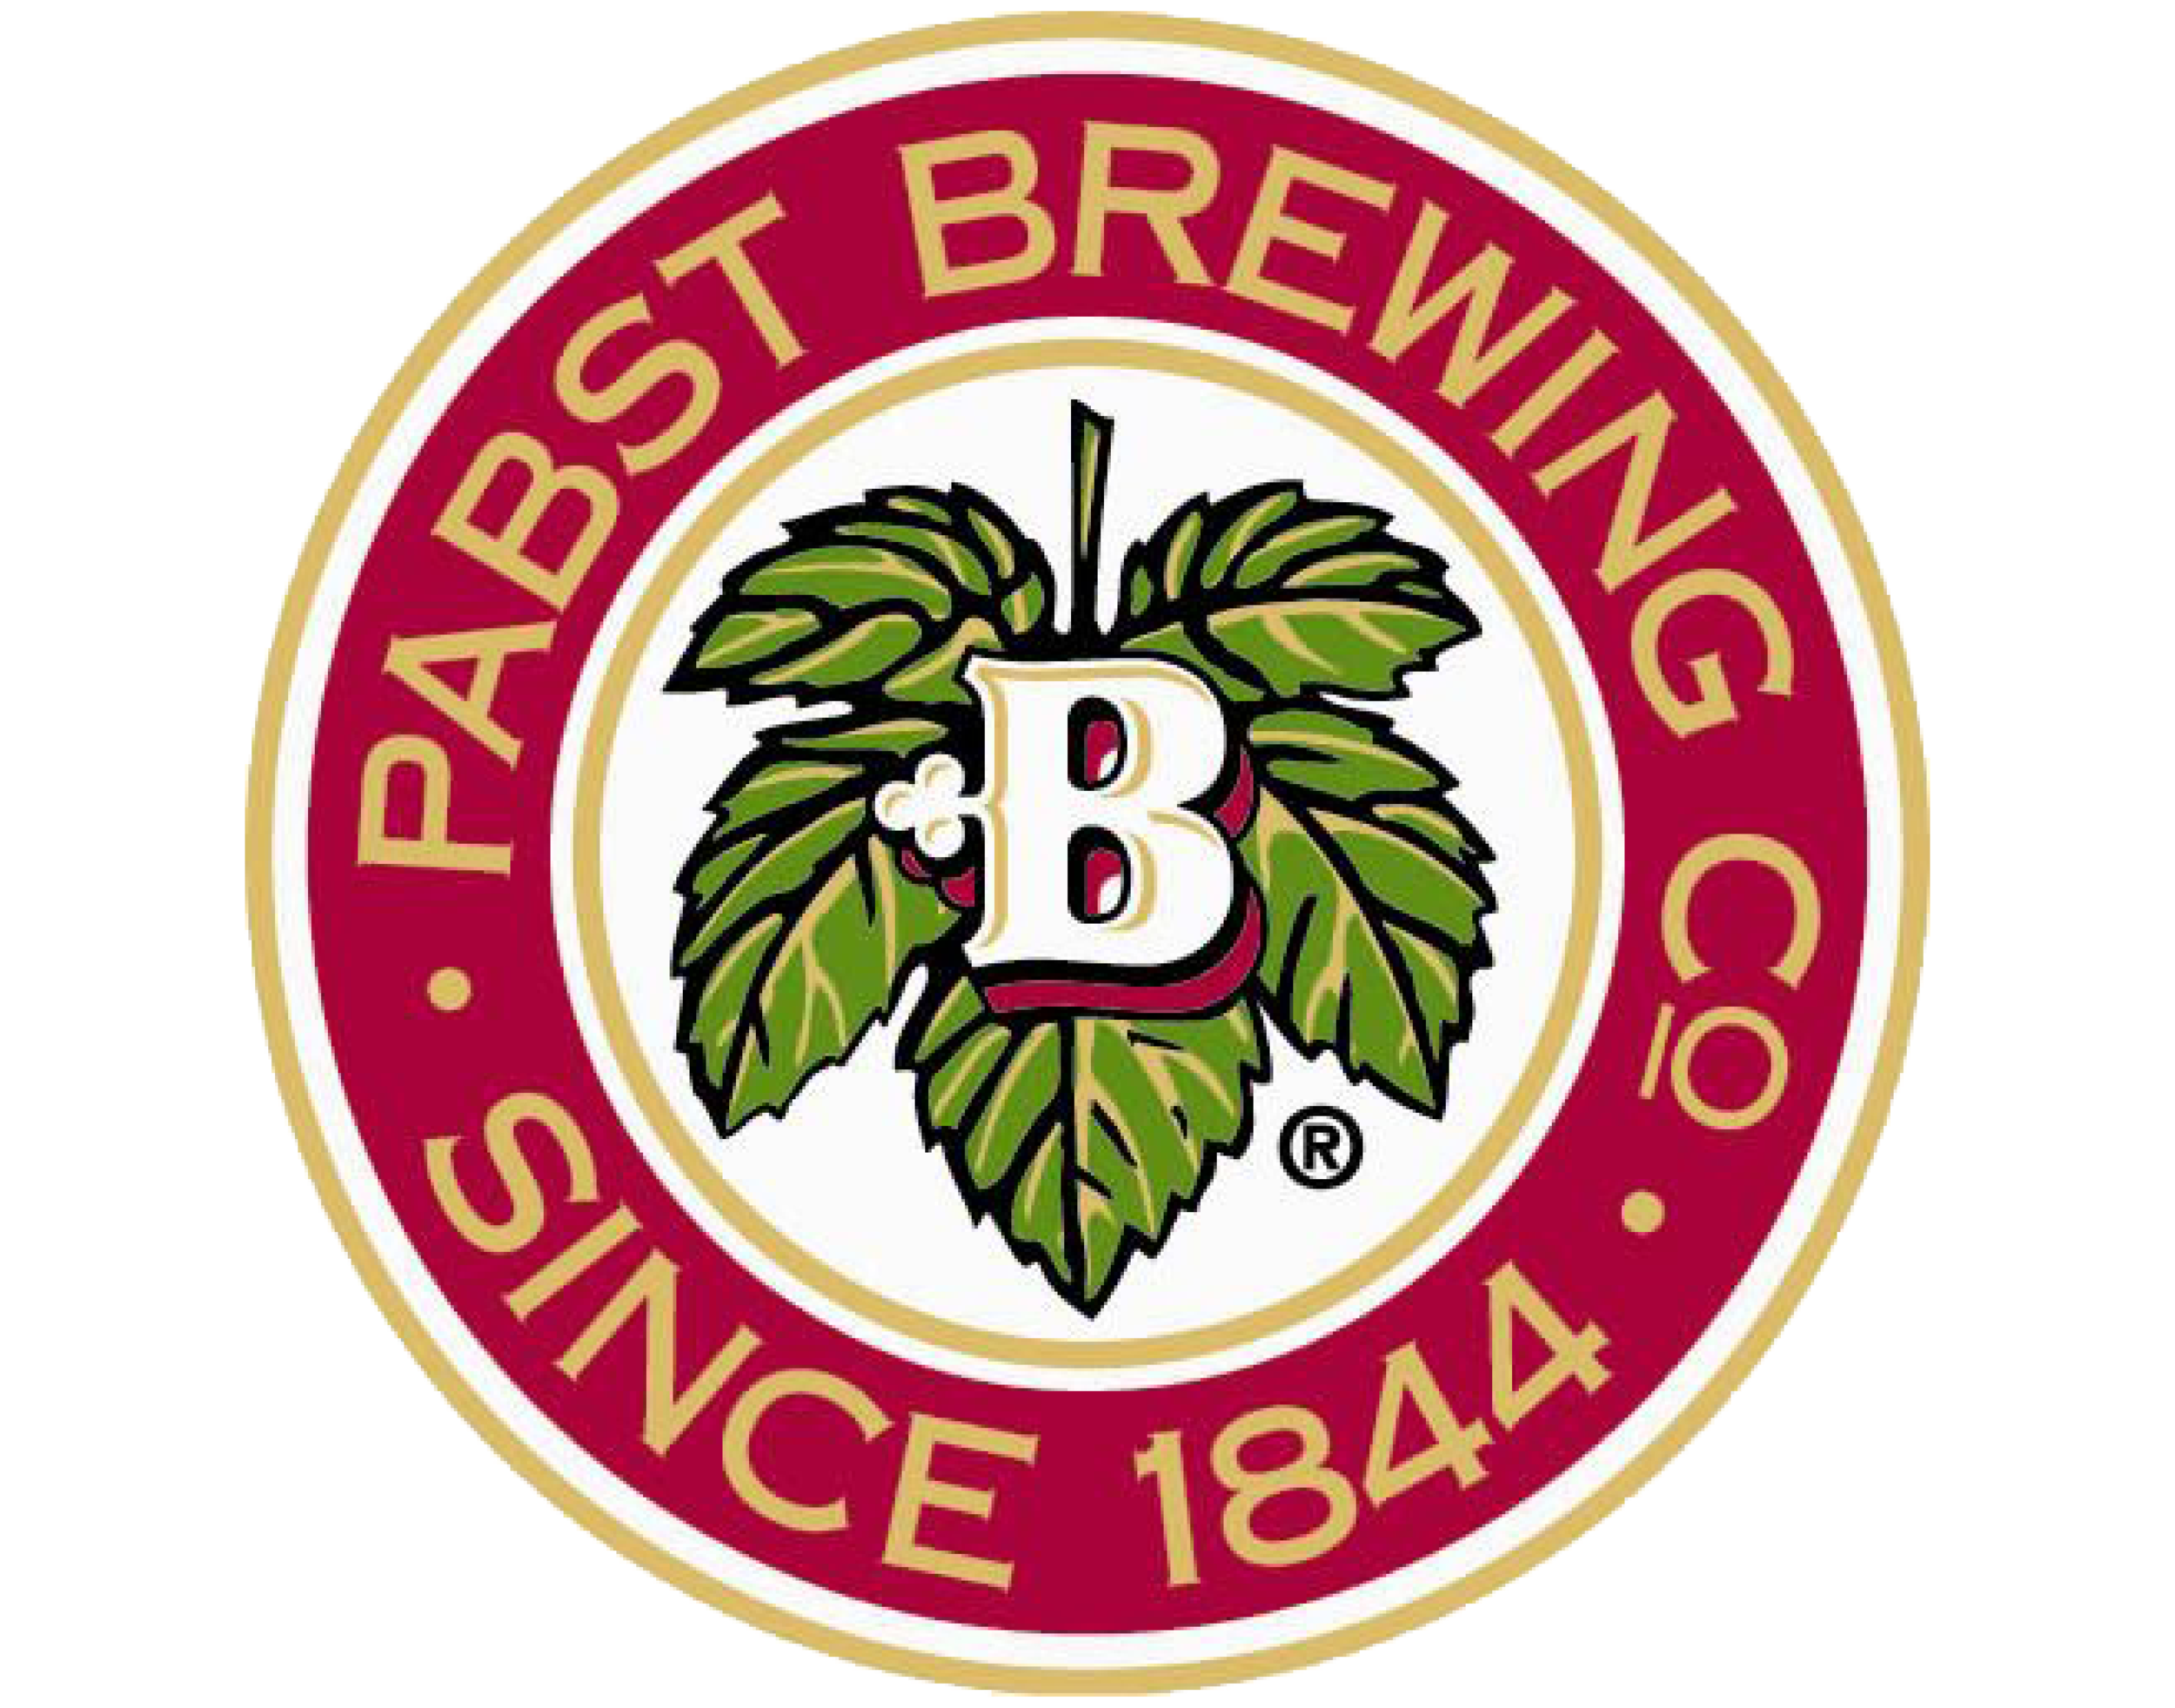 Pabst Brewing Company Logo. Links to Pabst Brewing Company website.